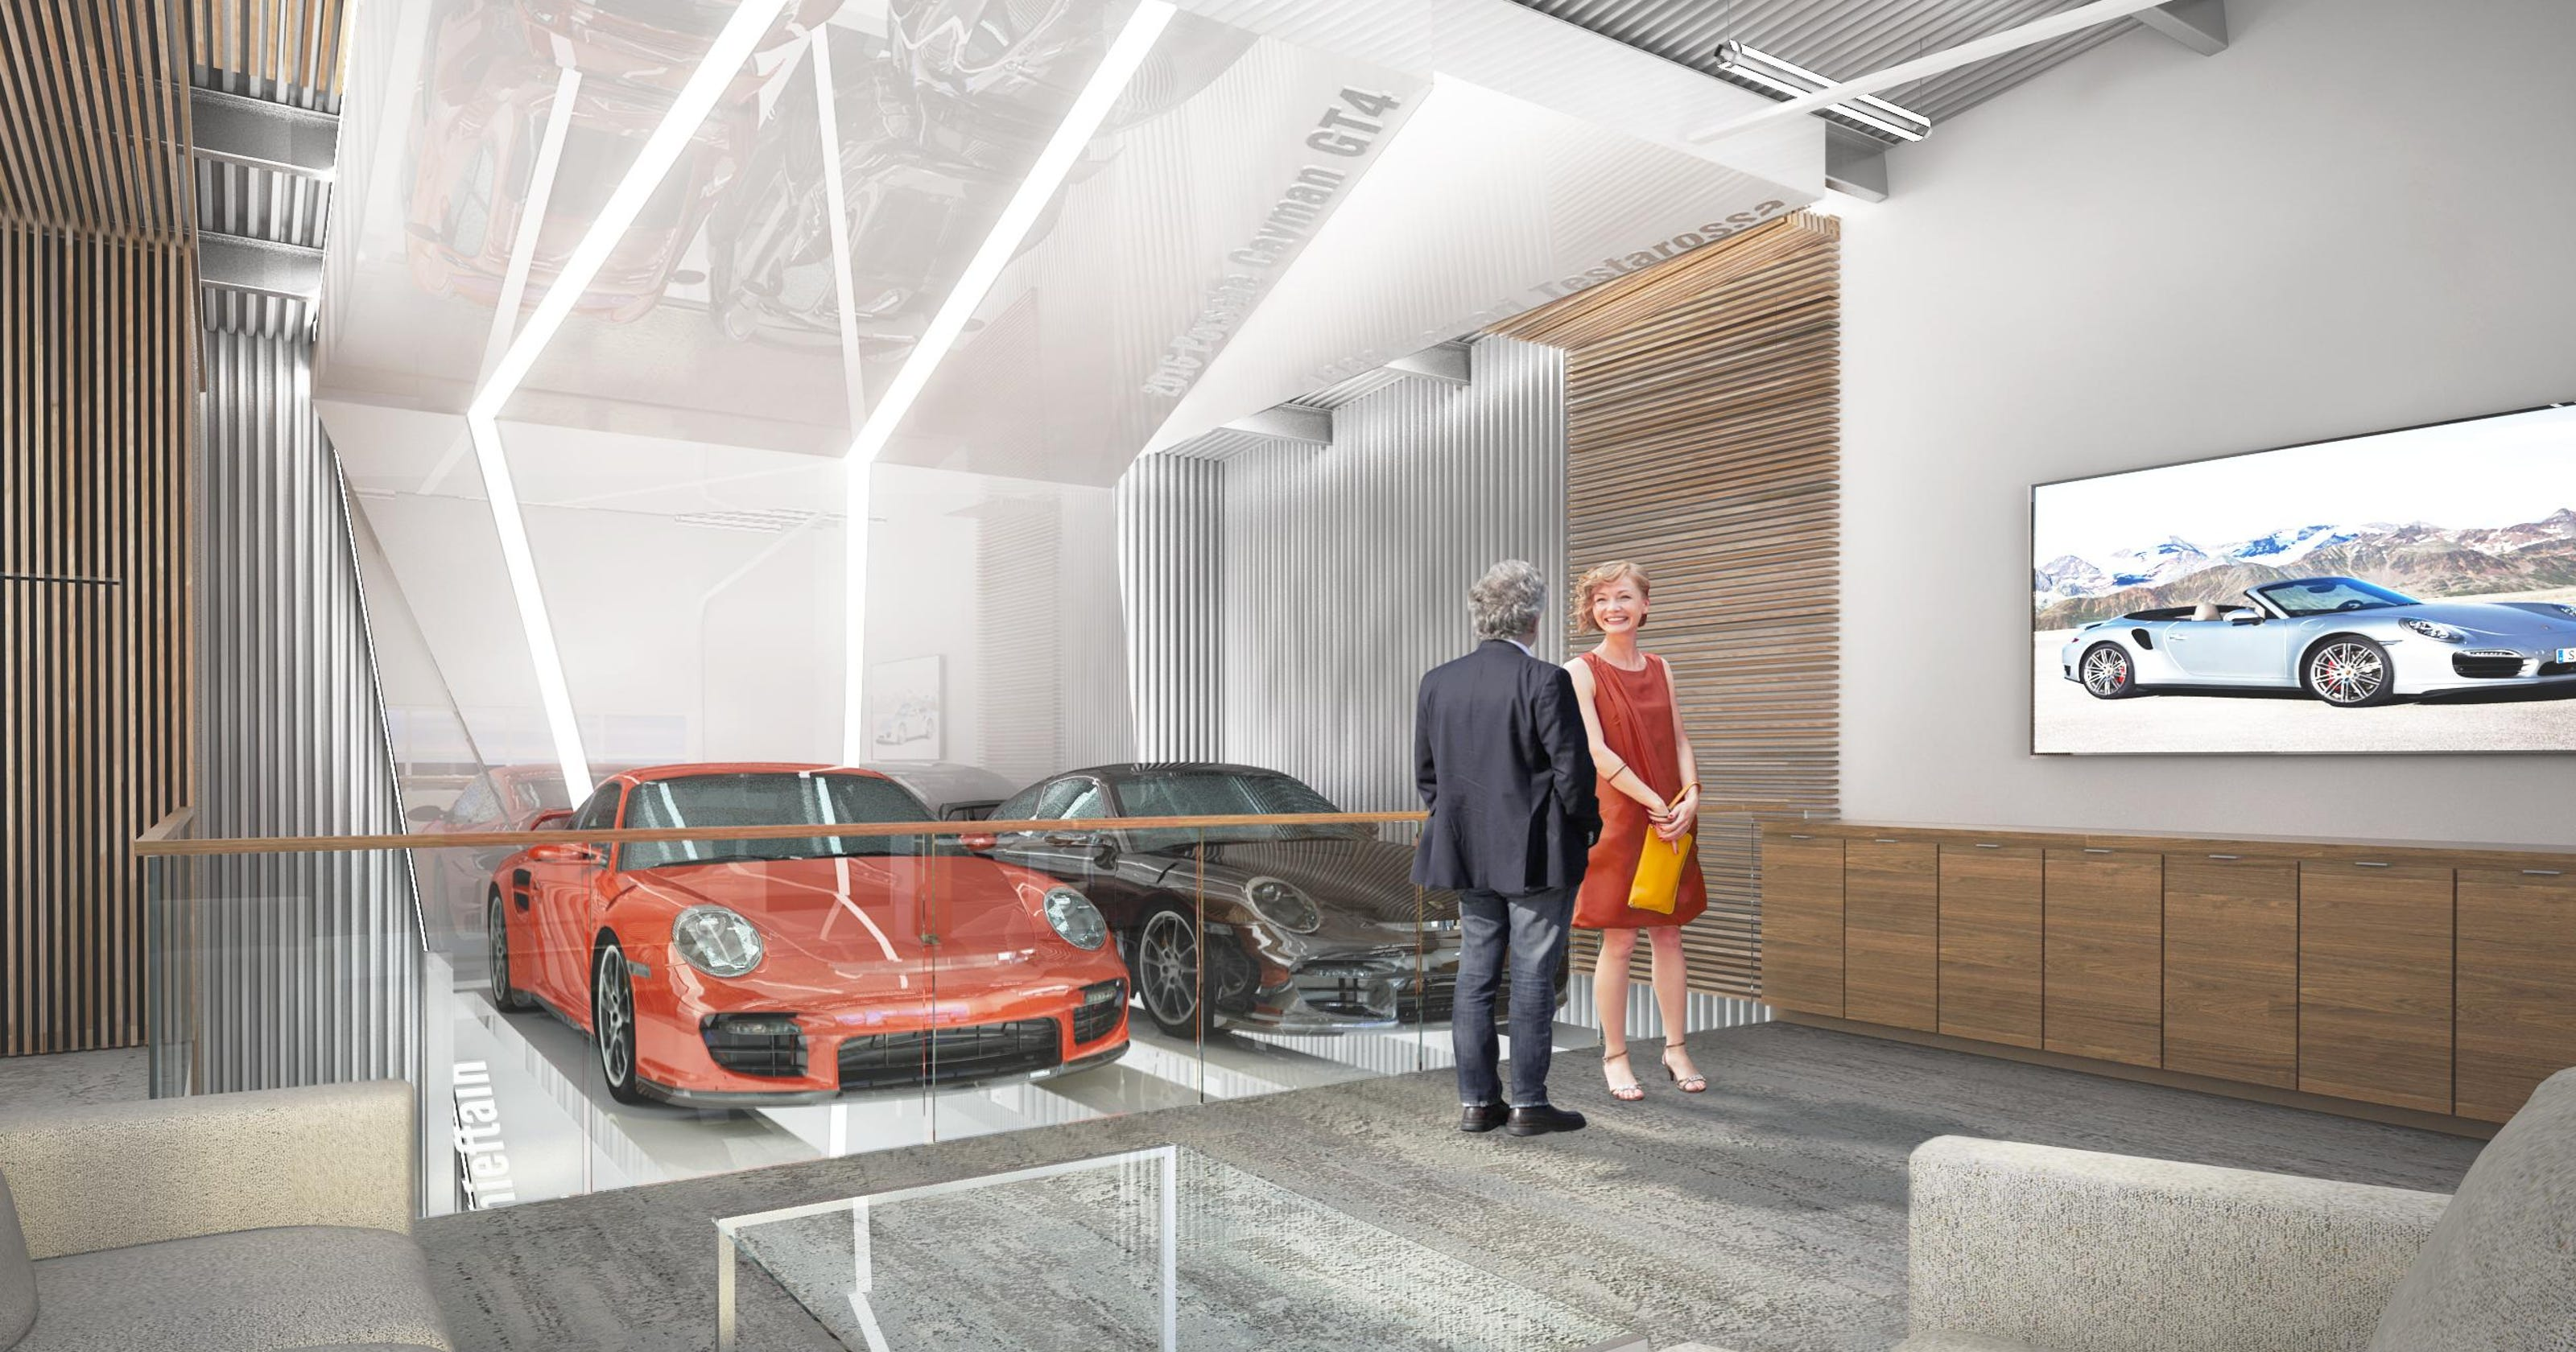 M1 Concourse: Race track, car condos set to open in Pontiac